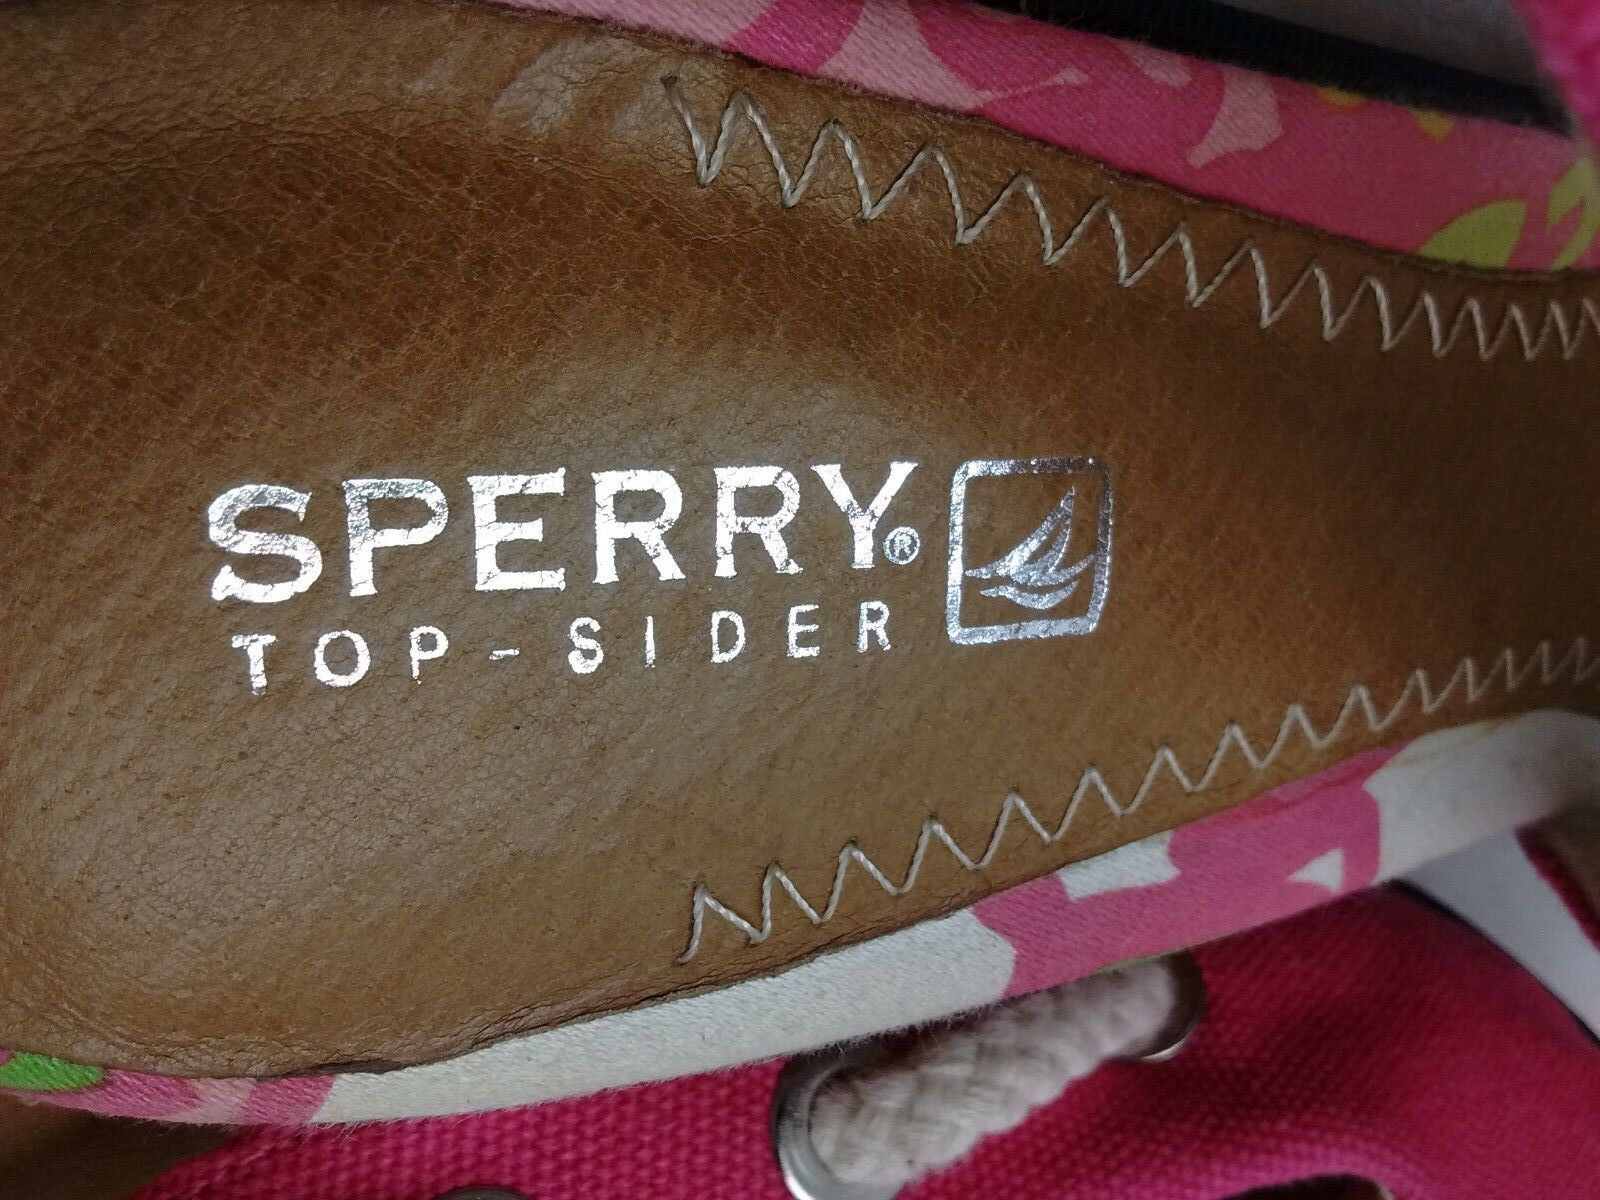 Sperry Top-Sider Light Rosa Canvas Canvas Canvas Slingback Cork-Wedge Sandal Woman's schuhe 10M 3ef818